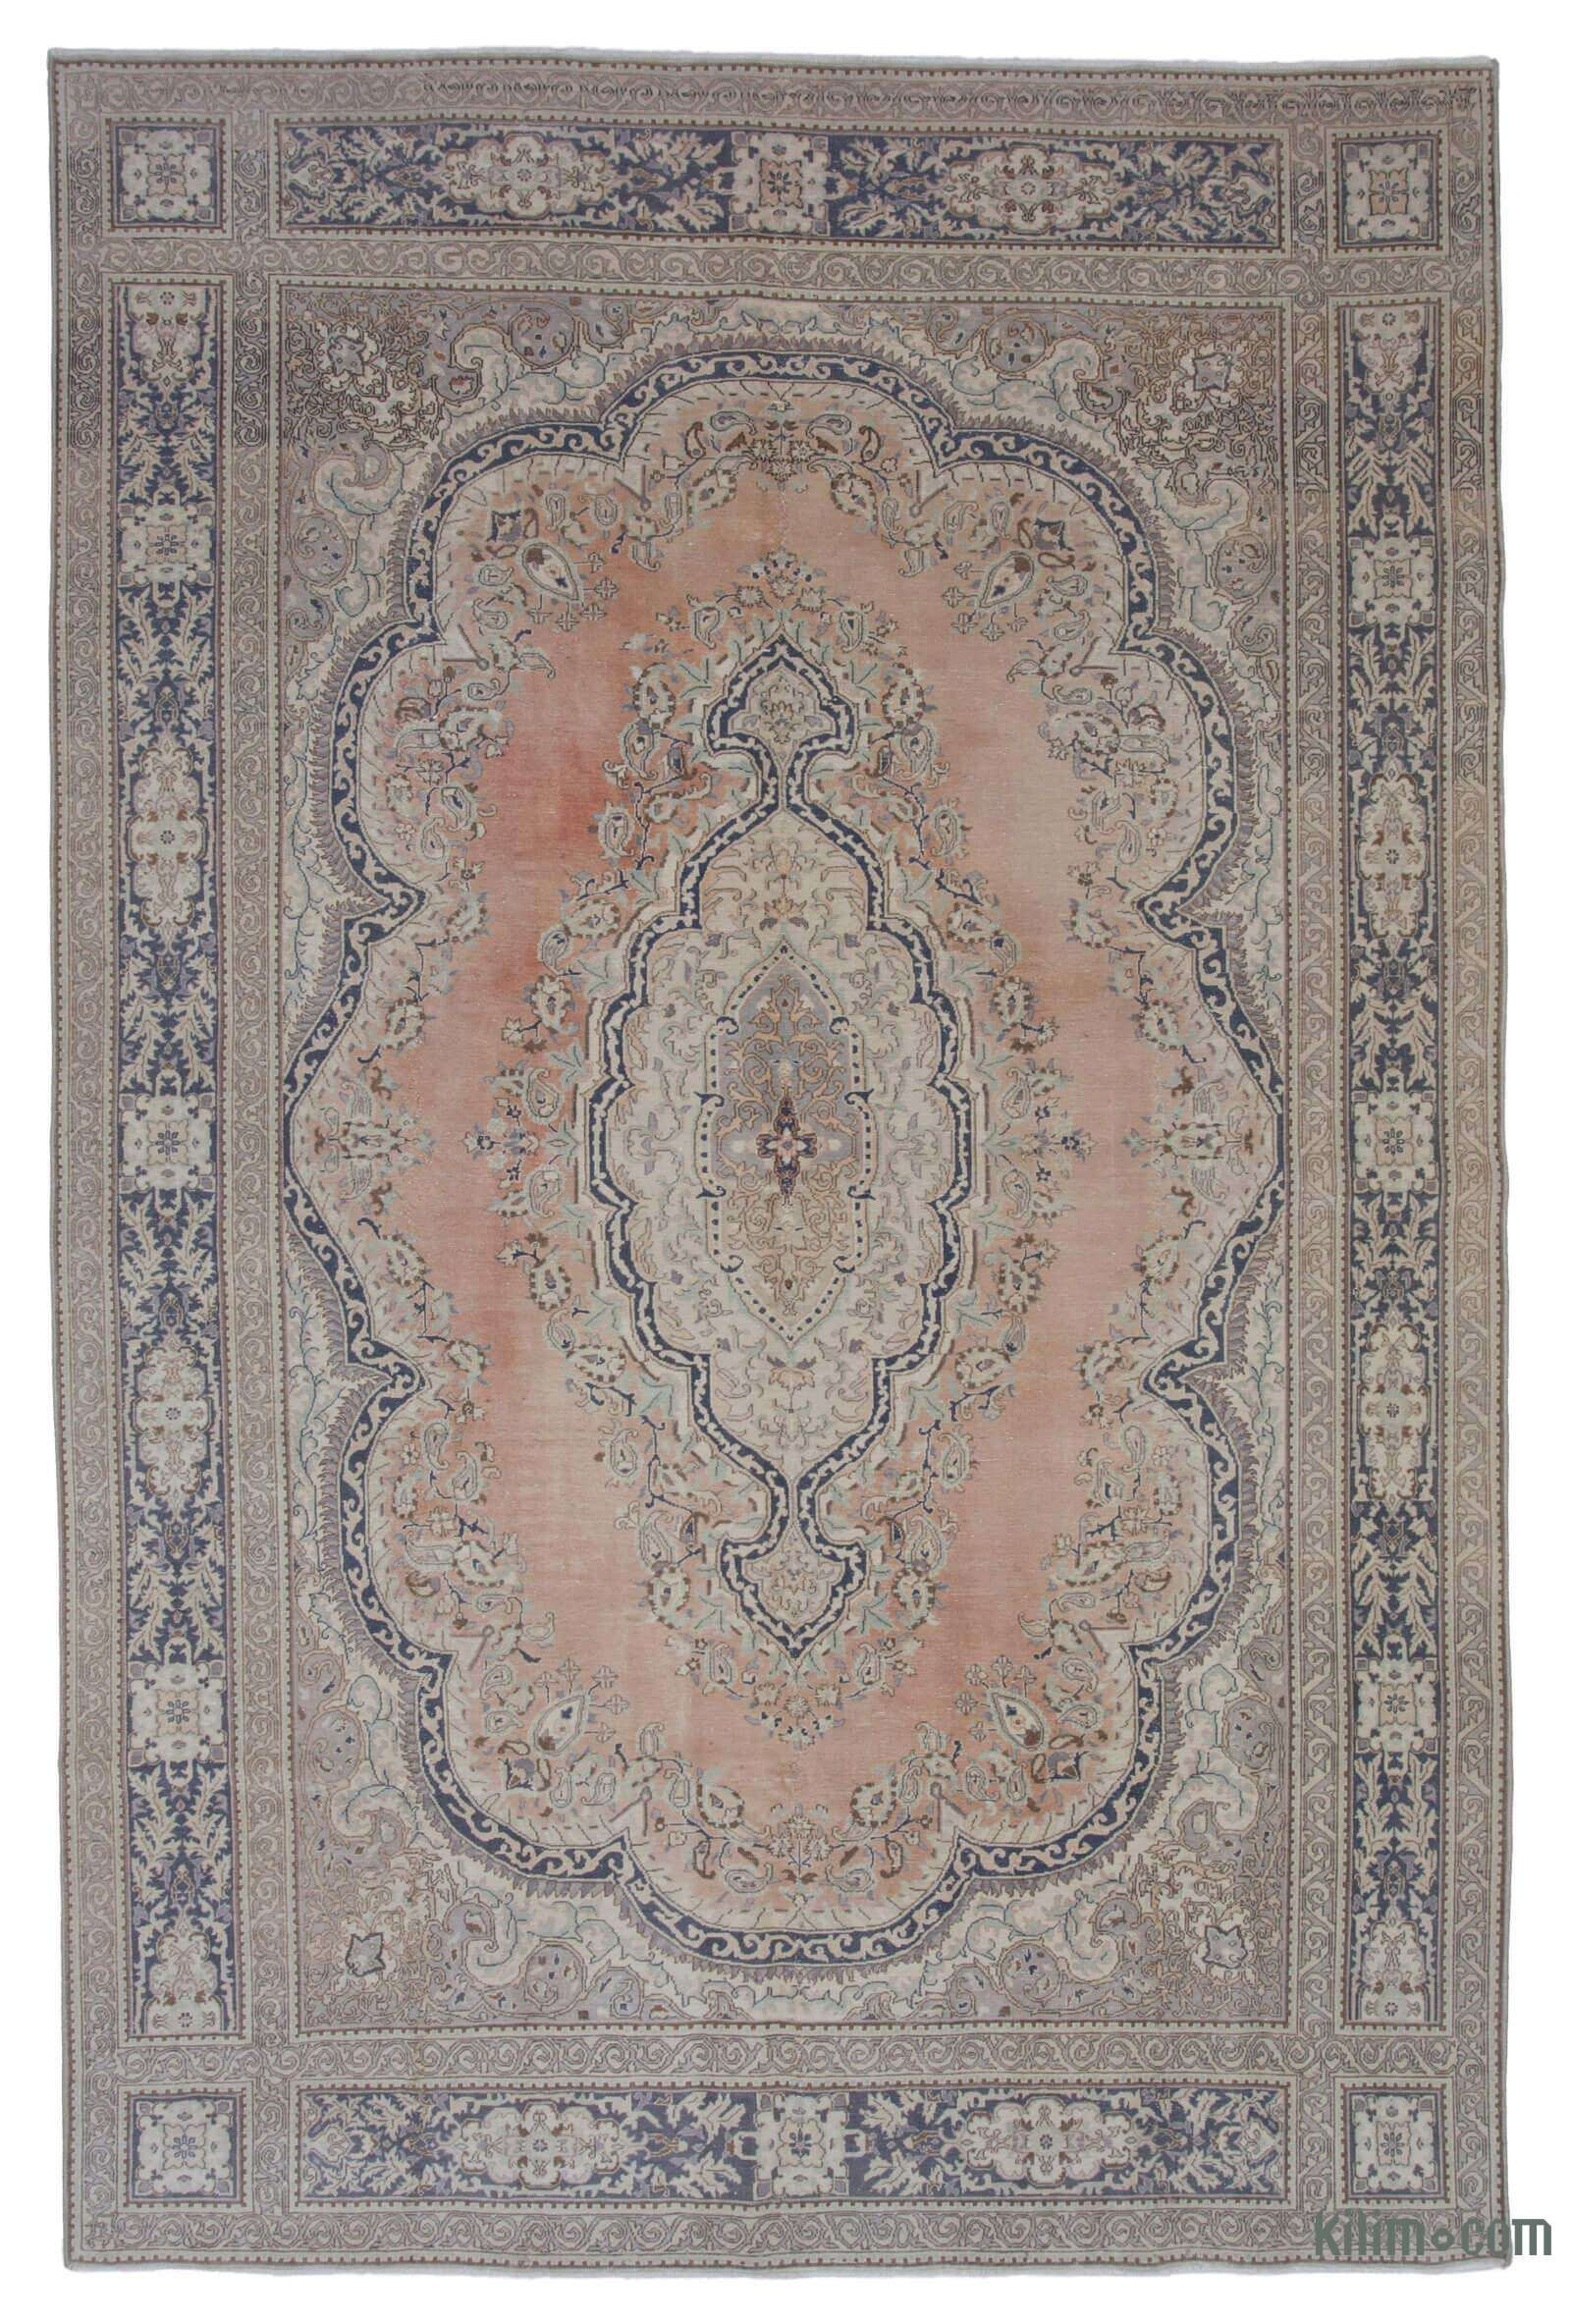 Vintage Hand Knotted Oriental Rug 7 10 X 12 94 In X 144 In